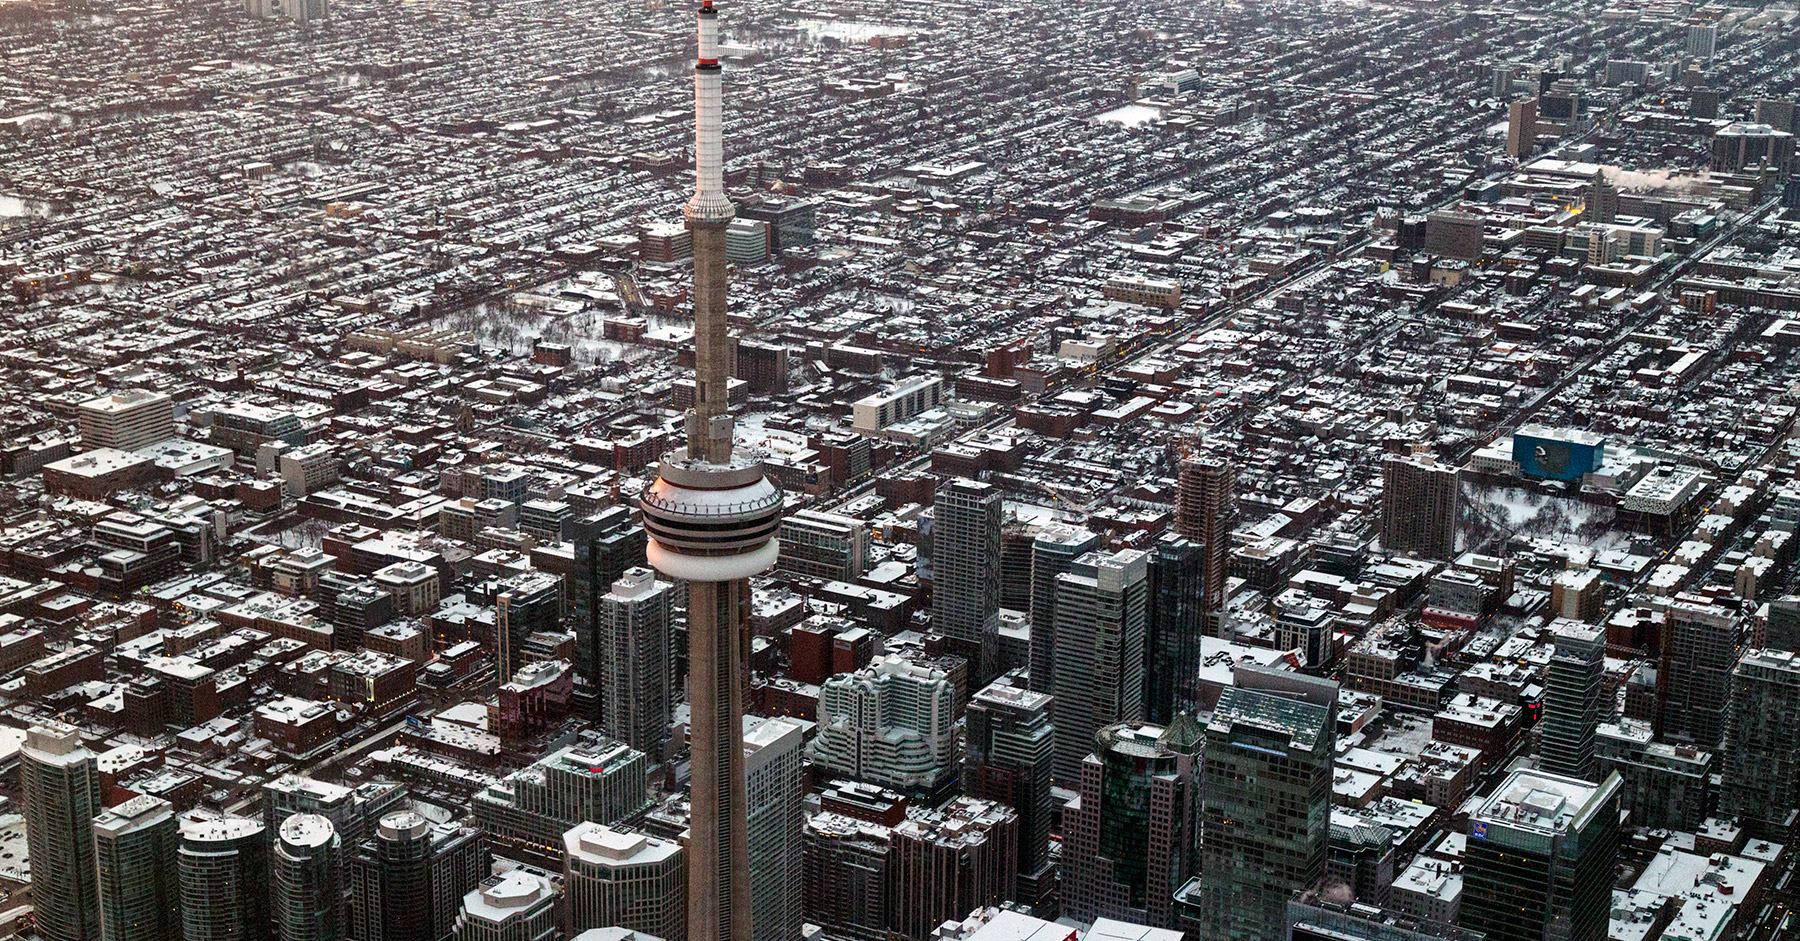 20150227. In an aerial photo of Toronto. The CN Tower stand sent